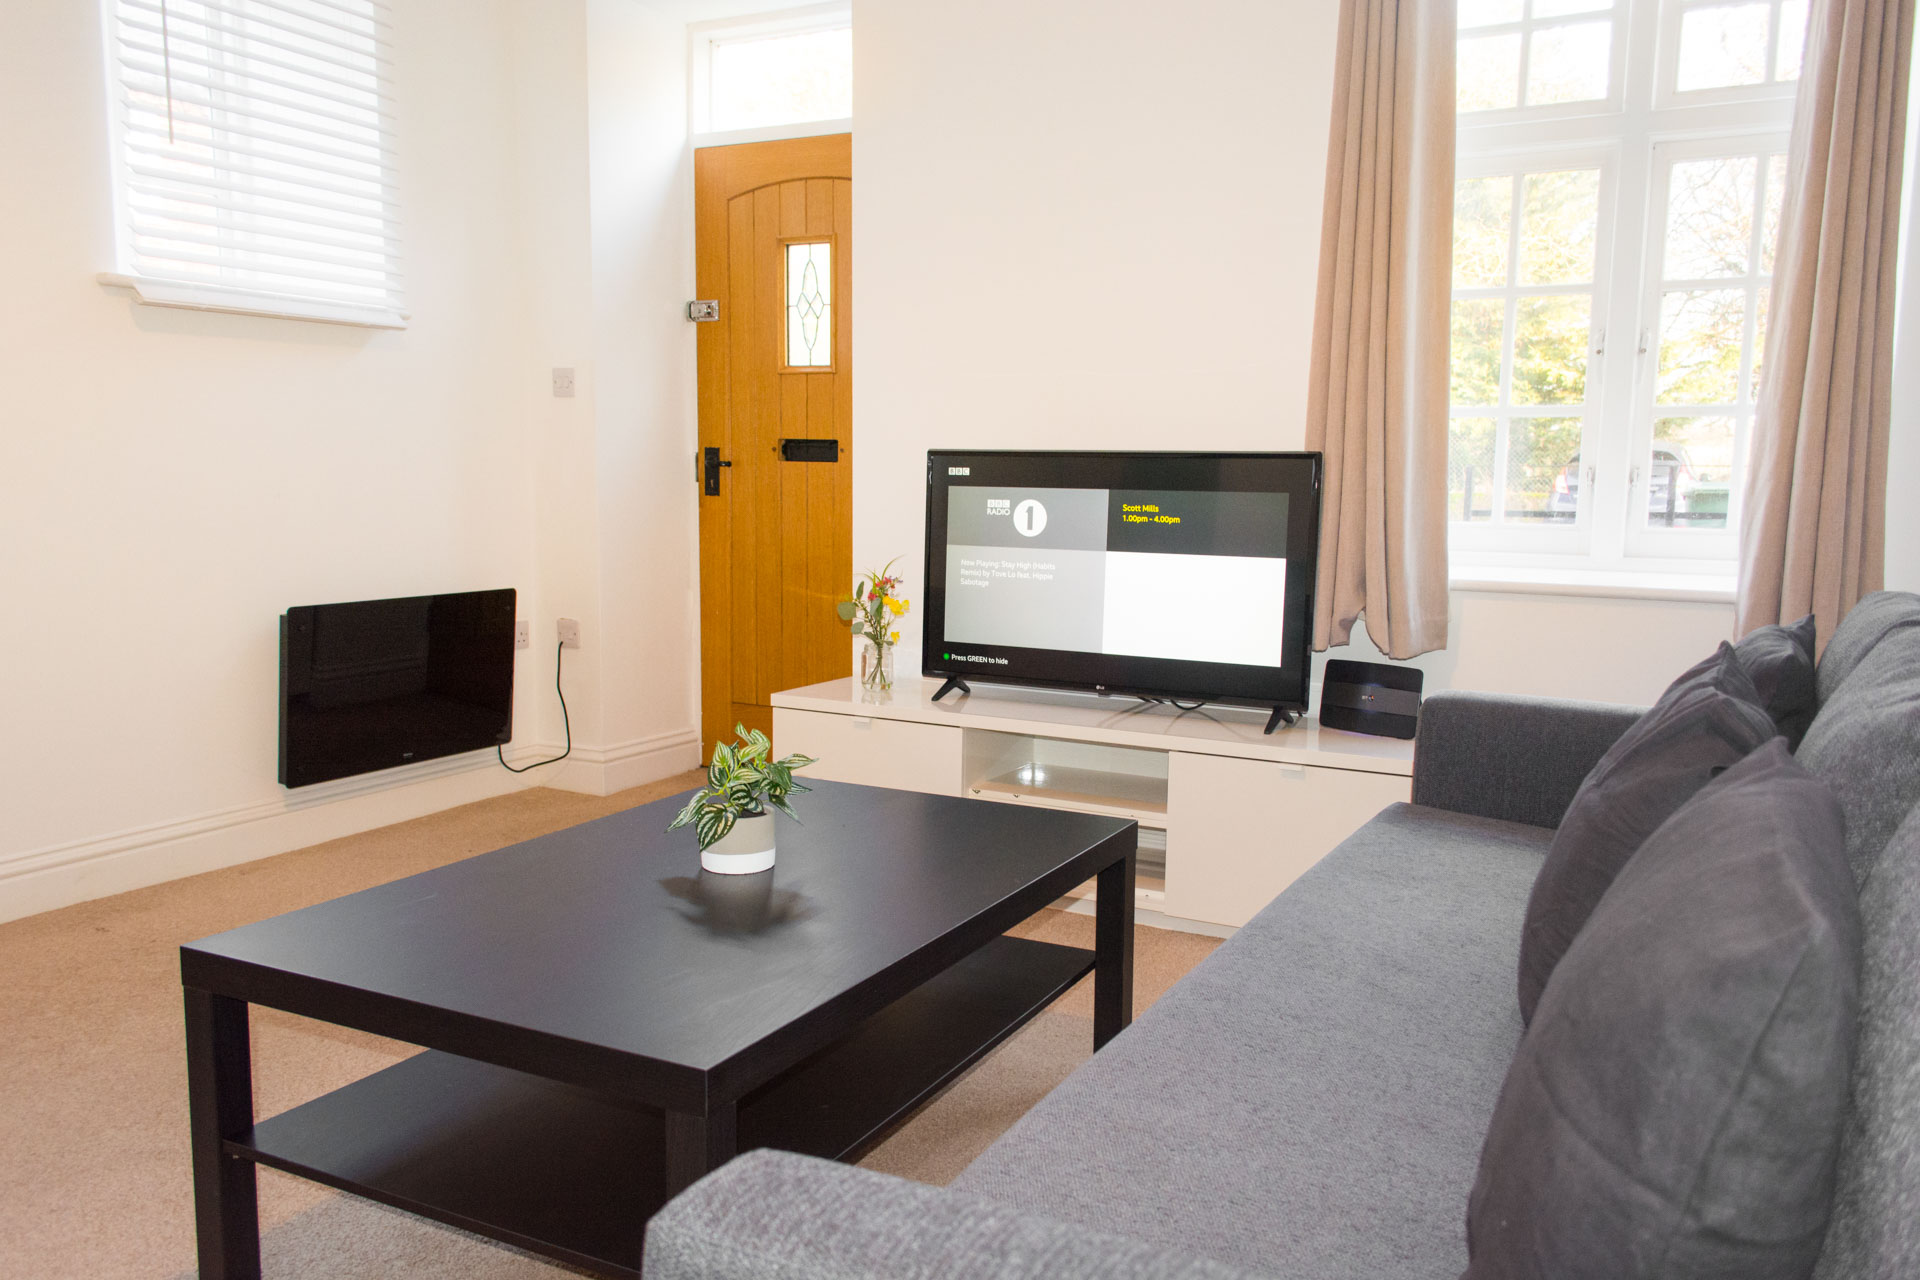 Grey sofas and black coffee table in family living area.